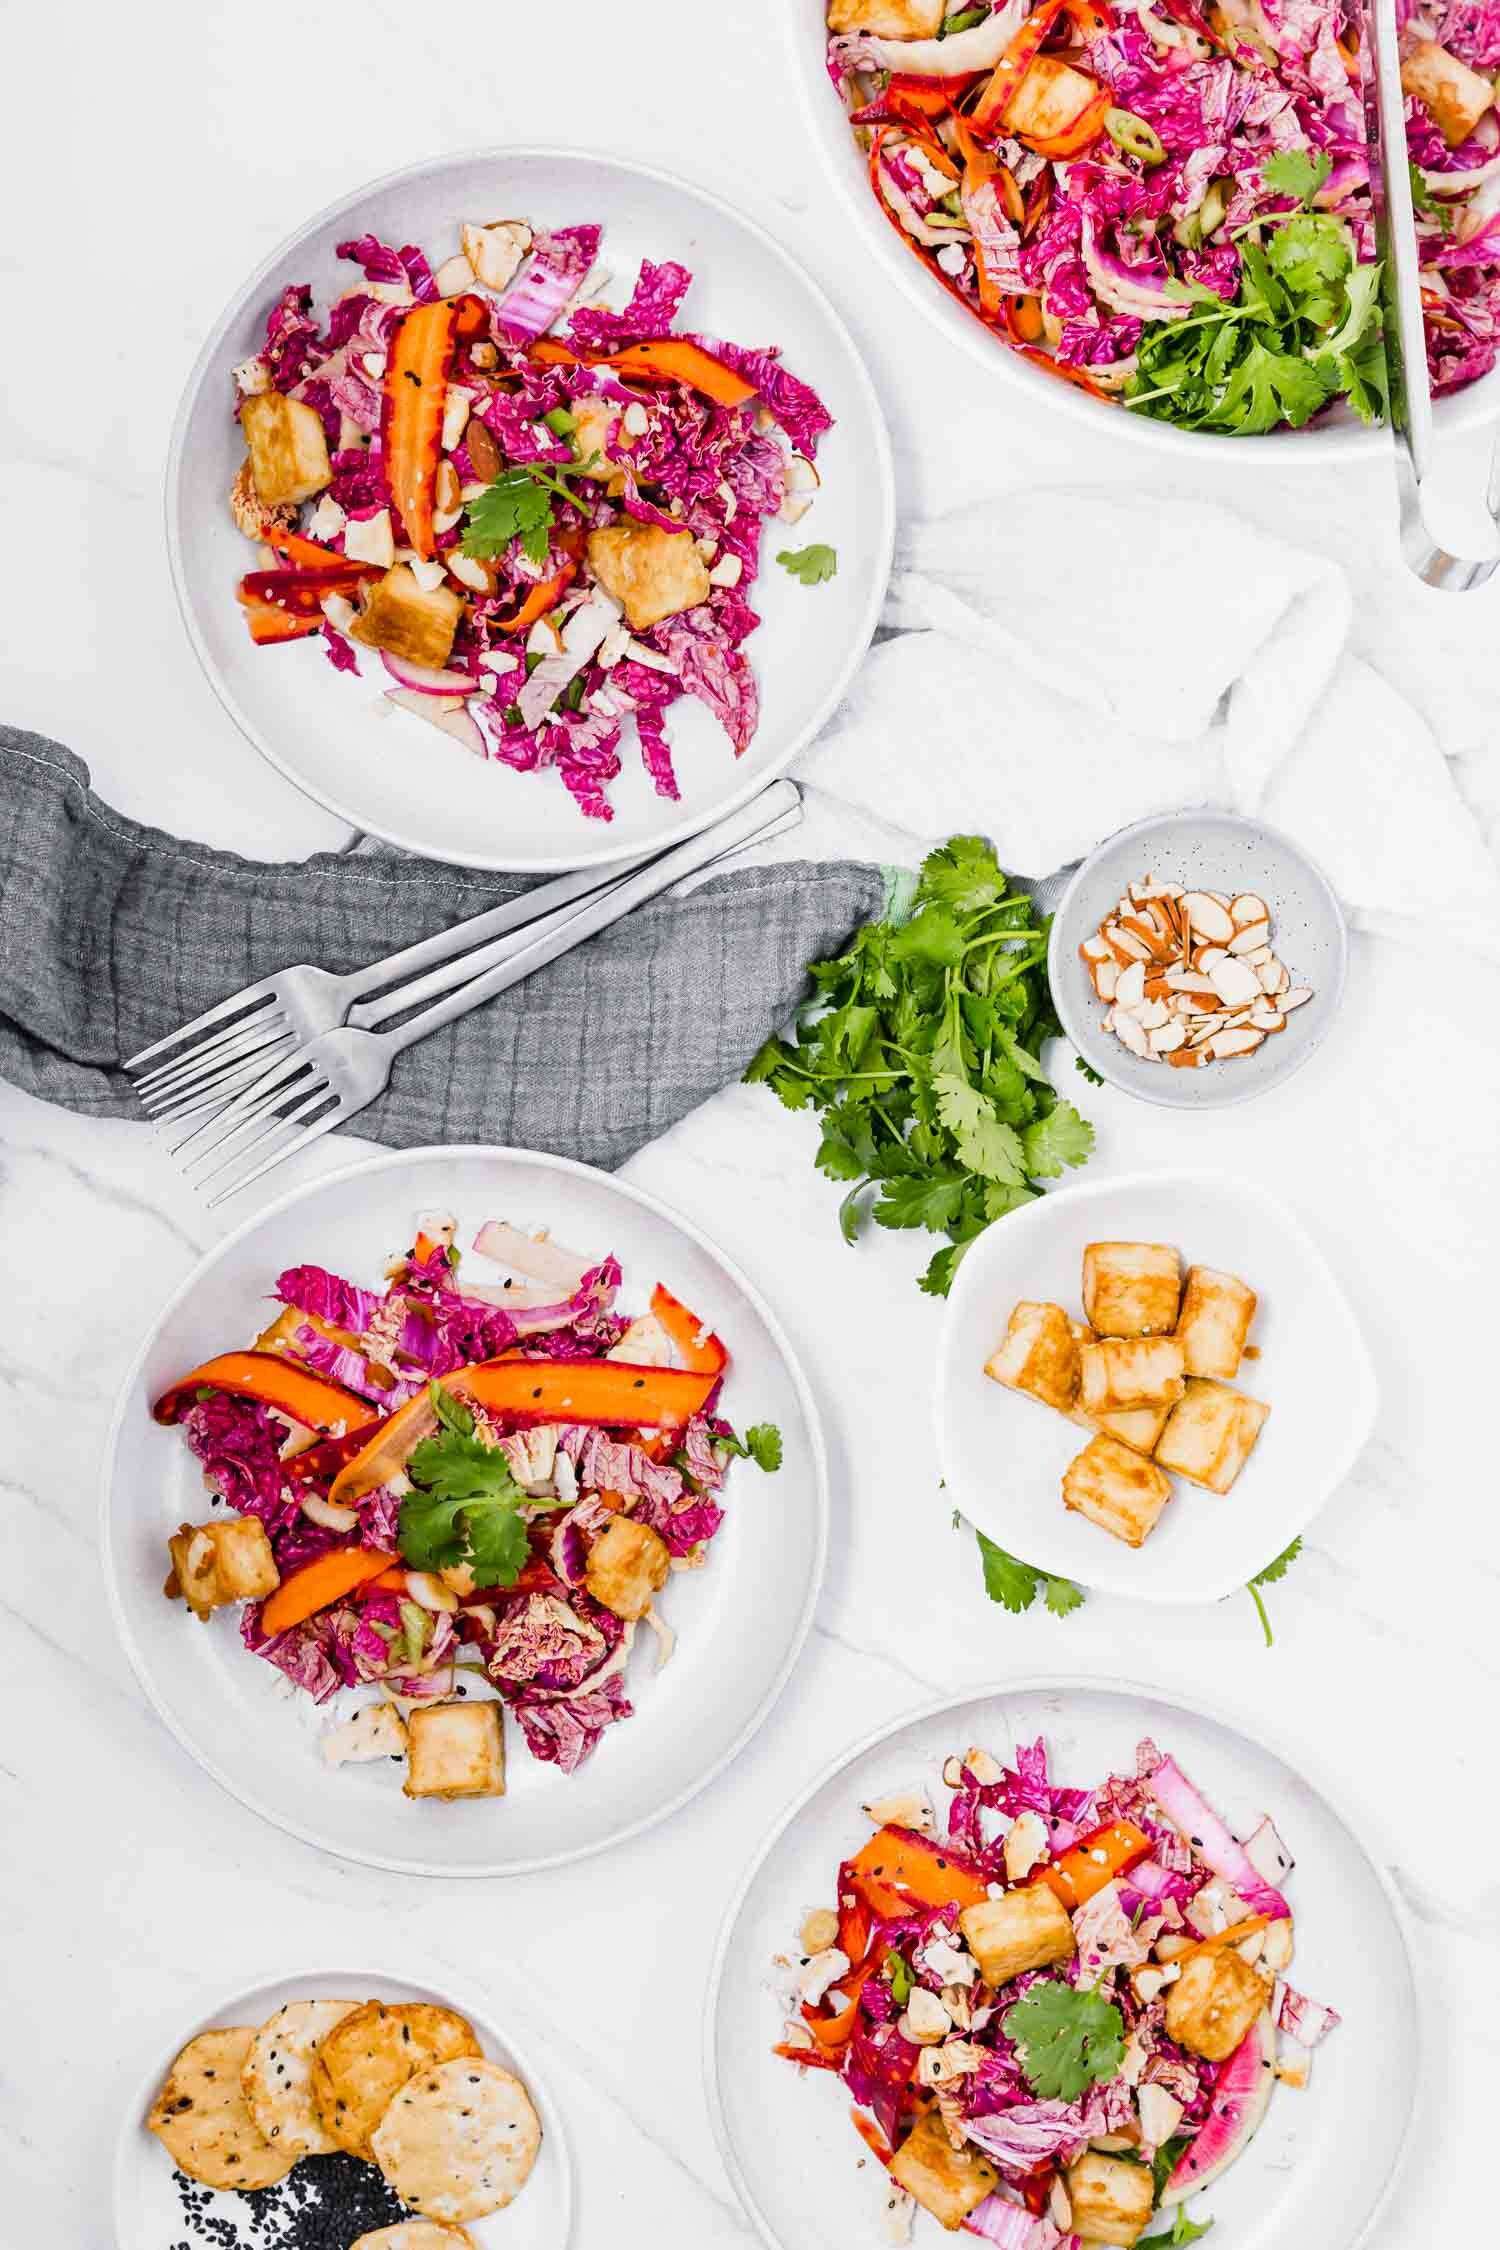 Crisp and Colorful Sesame Tofu Salad is a vegan play on Chinese Chicken Salad, with lots of crunch and flavor. #vegansalad #plantbased #dinner #lunch #salads #asiansalad #chinesechickenlesssalad #meatfree #refinedsugarfree #glutenfree #tofu #bakedtofu #crowdpleaser #ricecracker #colorfulfood